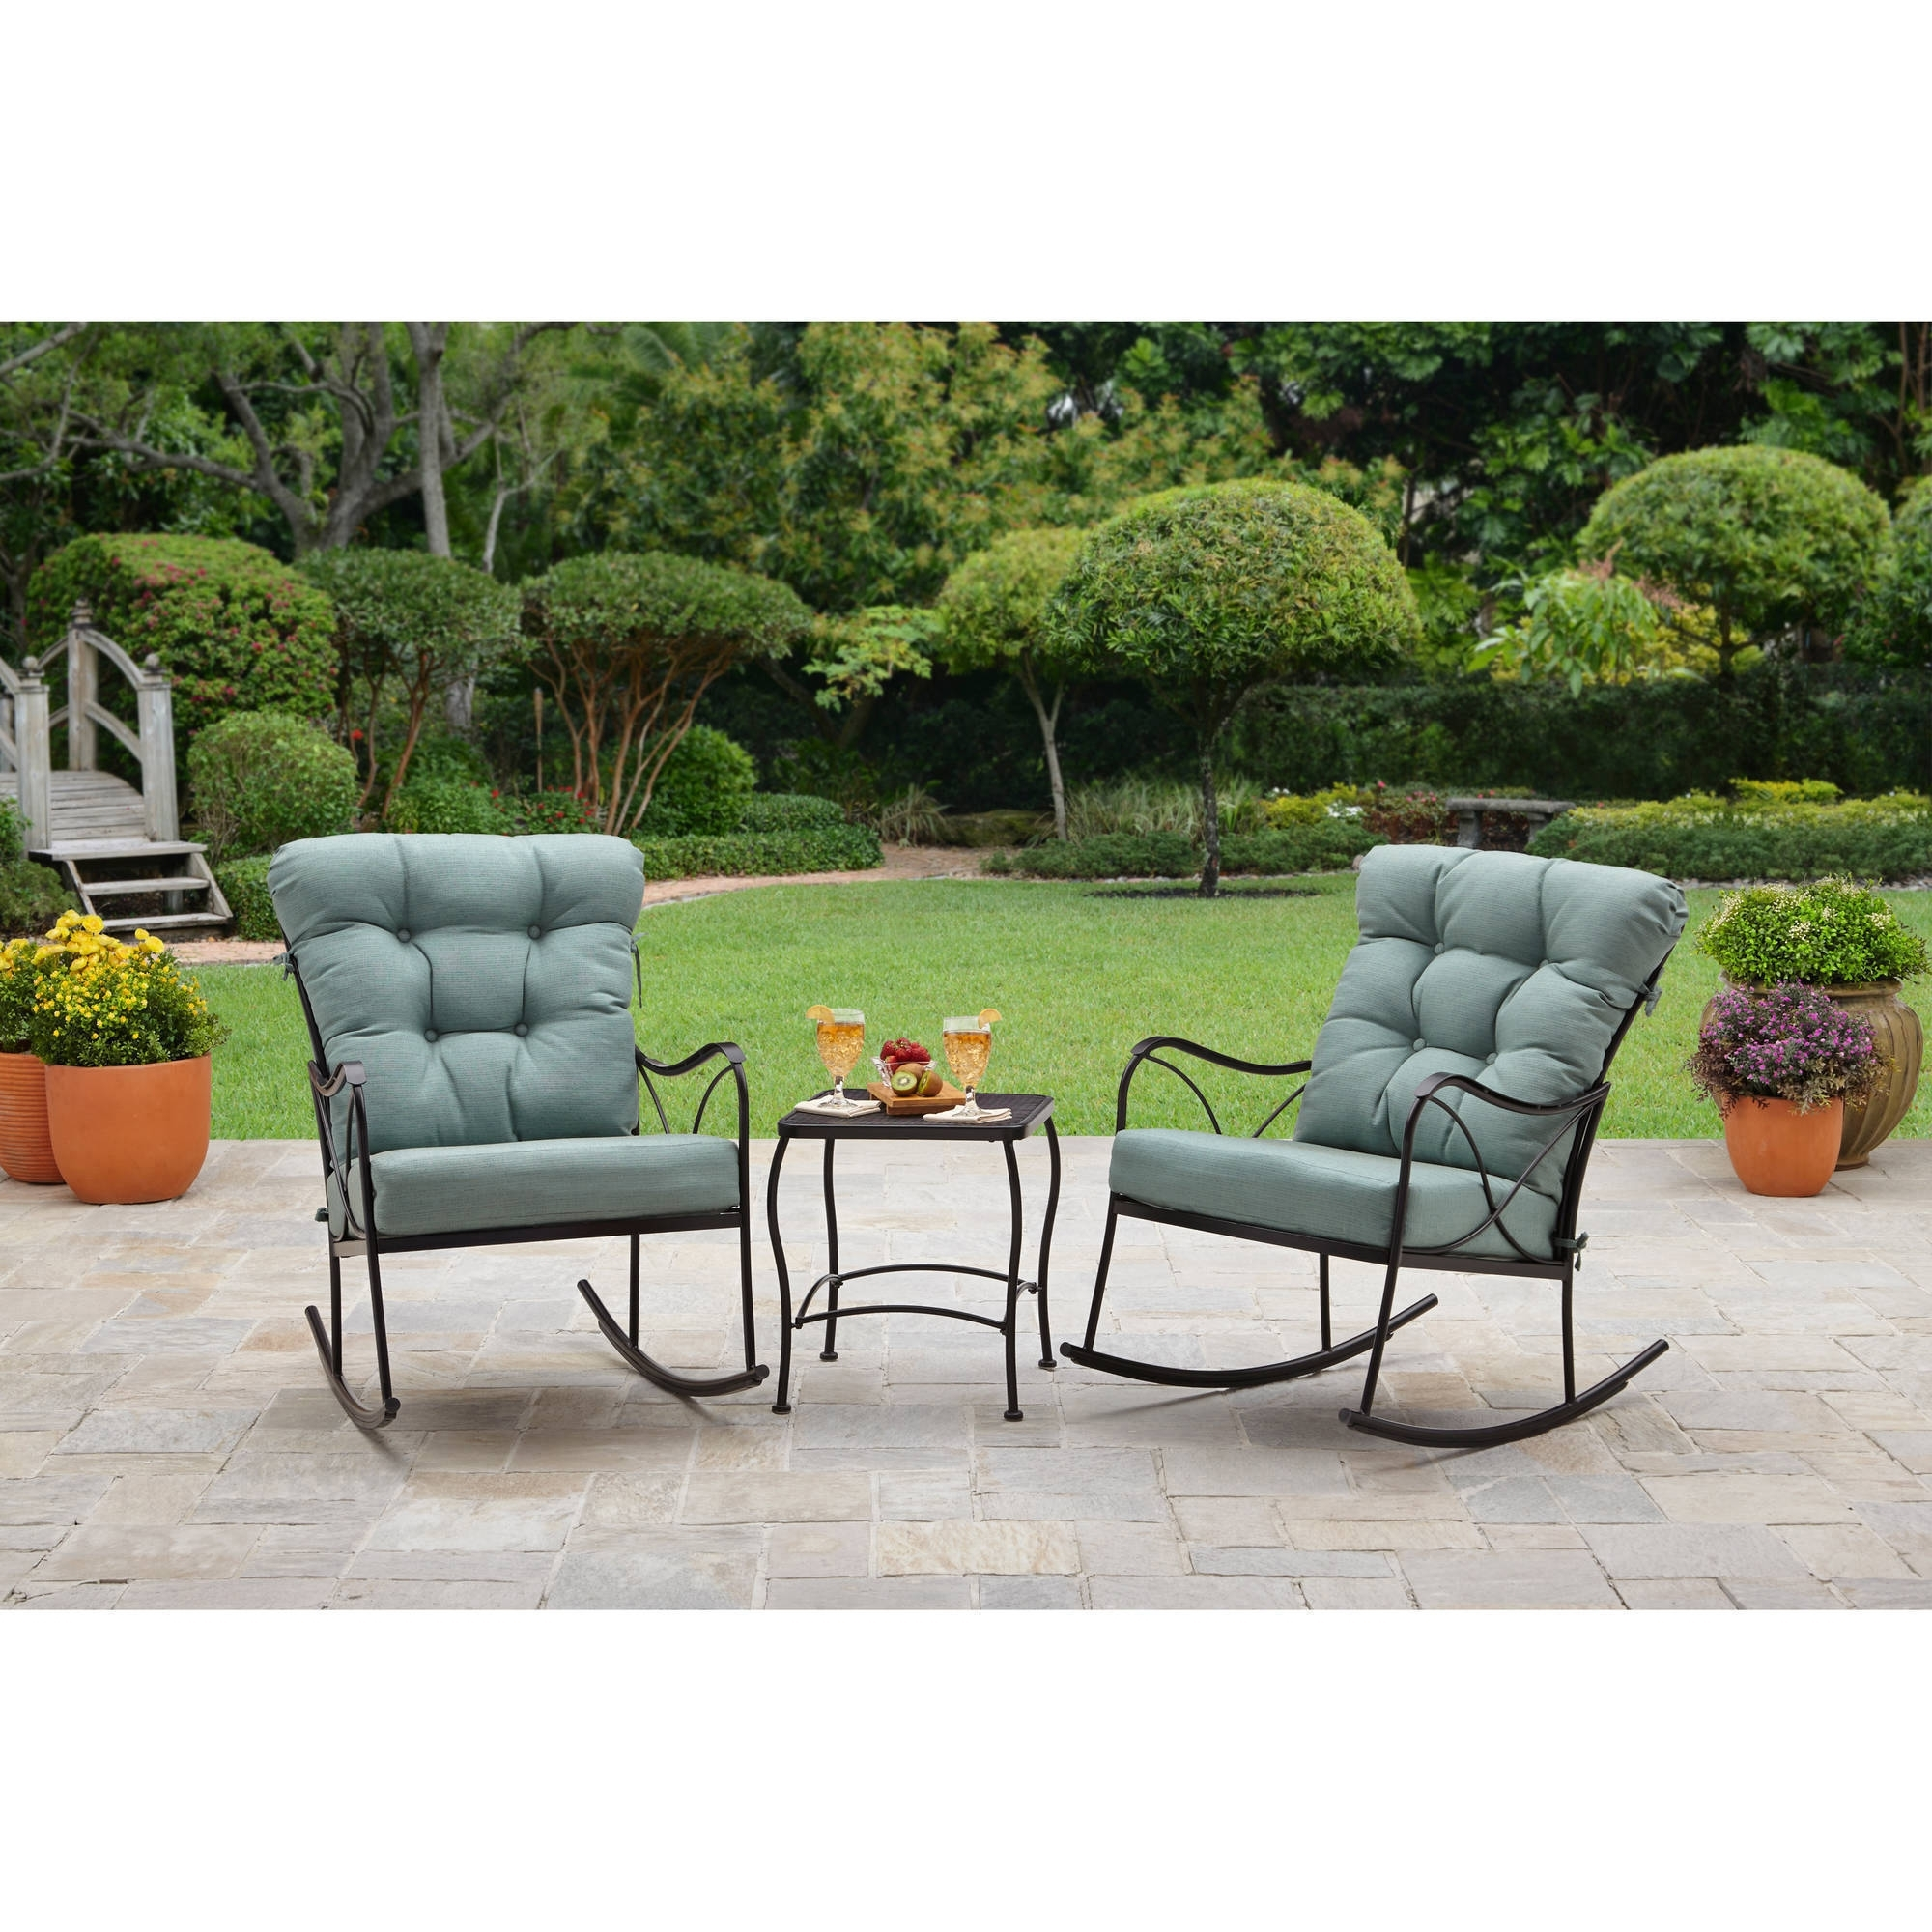 Widely Used Better Homes And Gardens Seacliff 3 Piece Rocking Chair Bistro Set Throughout Patio Rocking Chairs And Table (View 13 of 15)